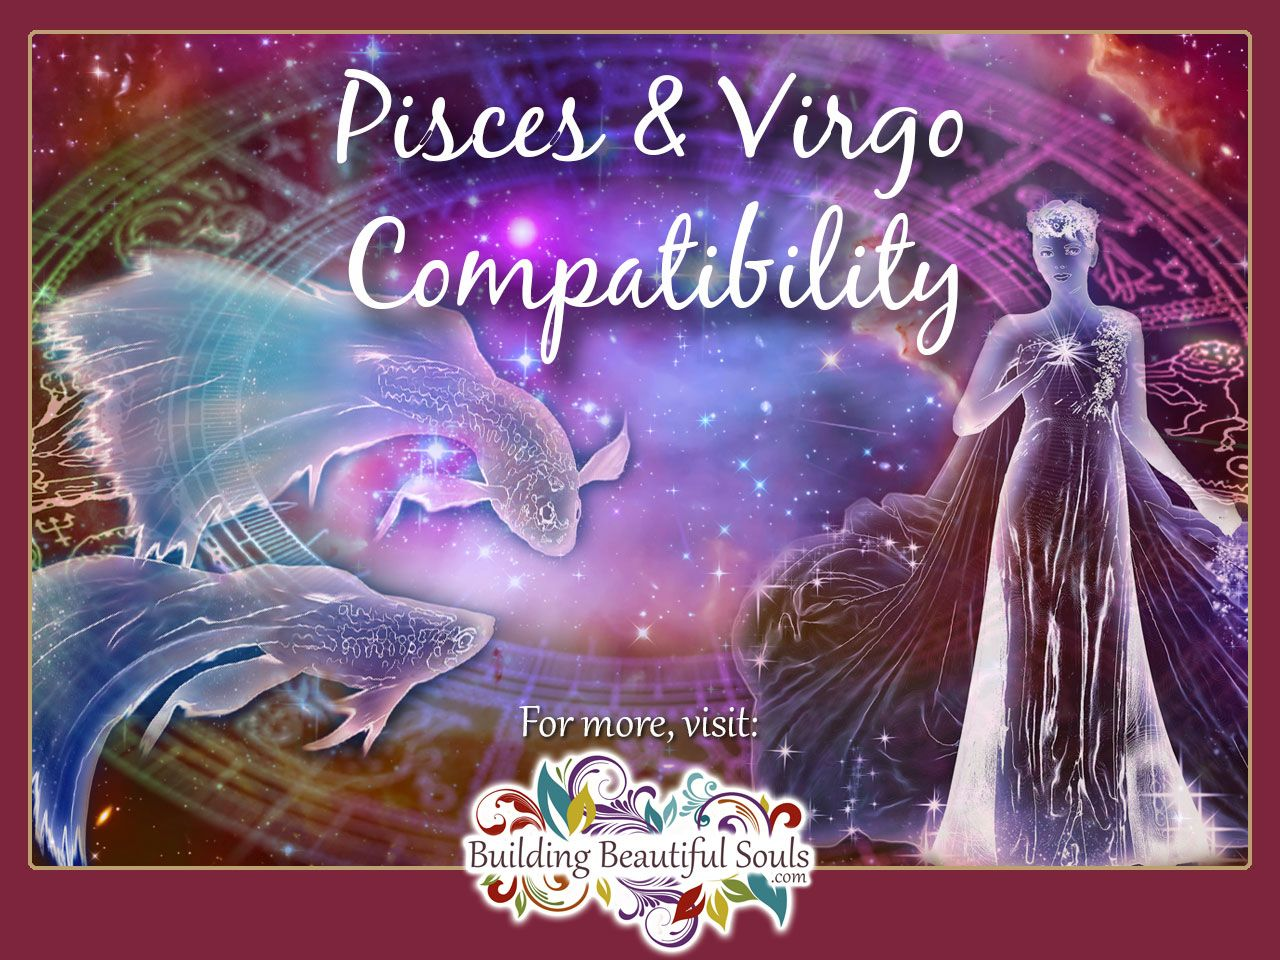 Pisces and Virgo 1280x960